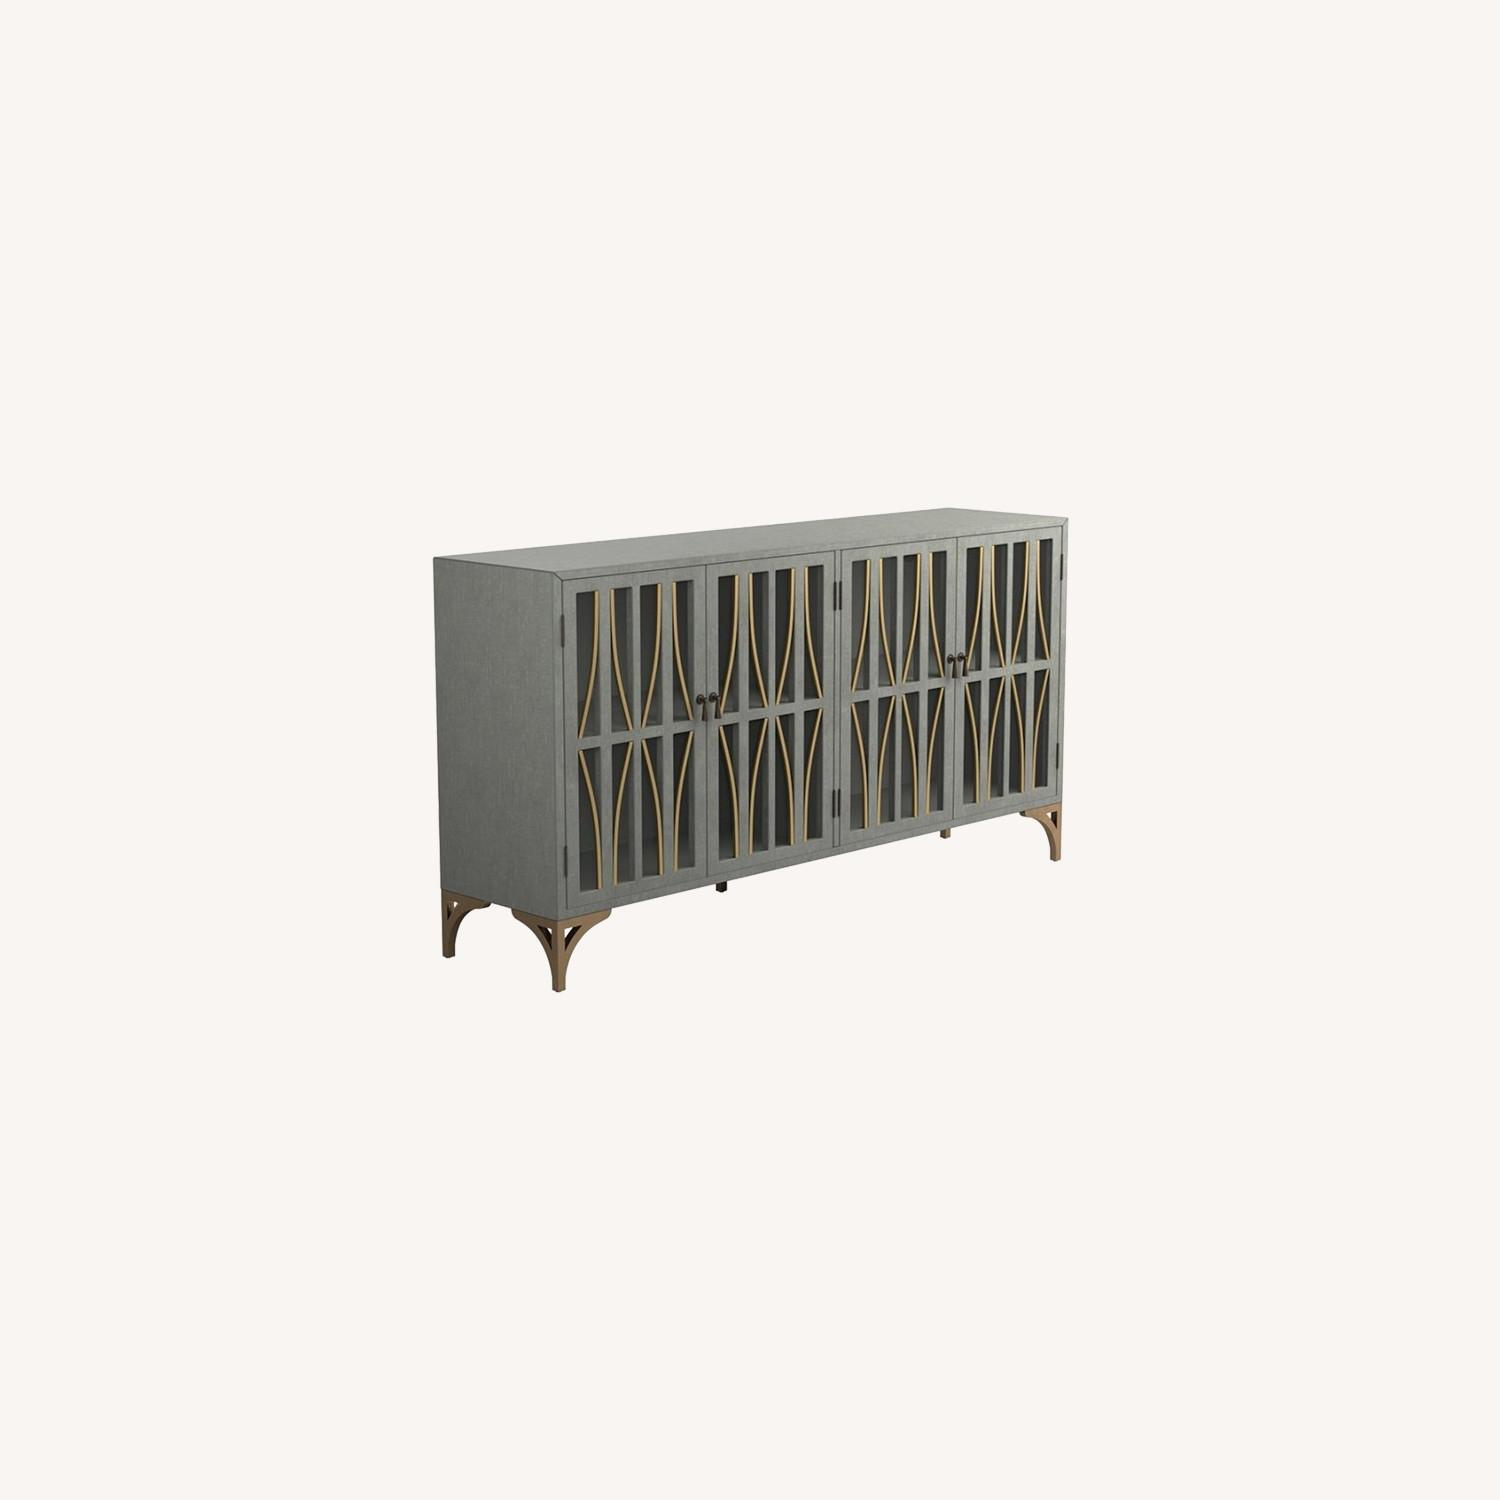 Contemporary Accent Cabinet In Grey Green Finish - image-5